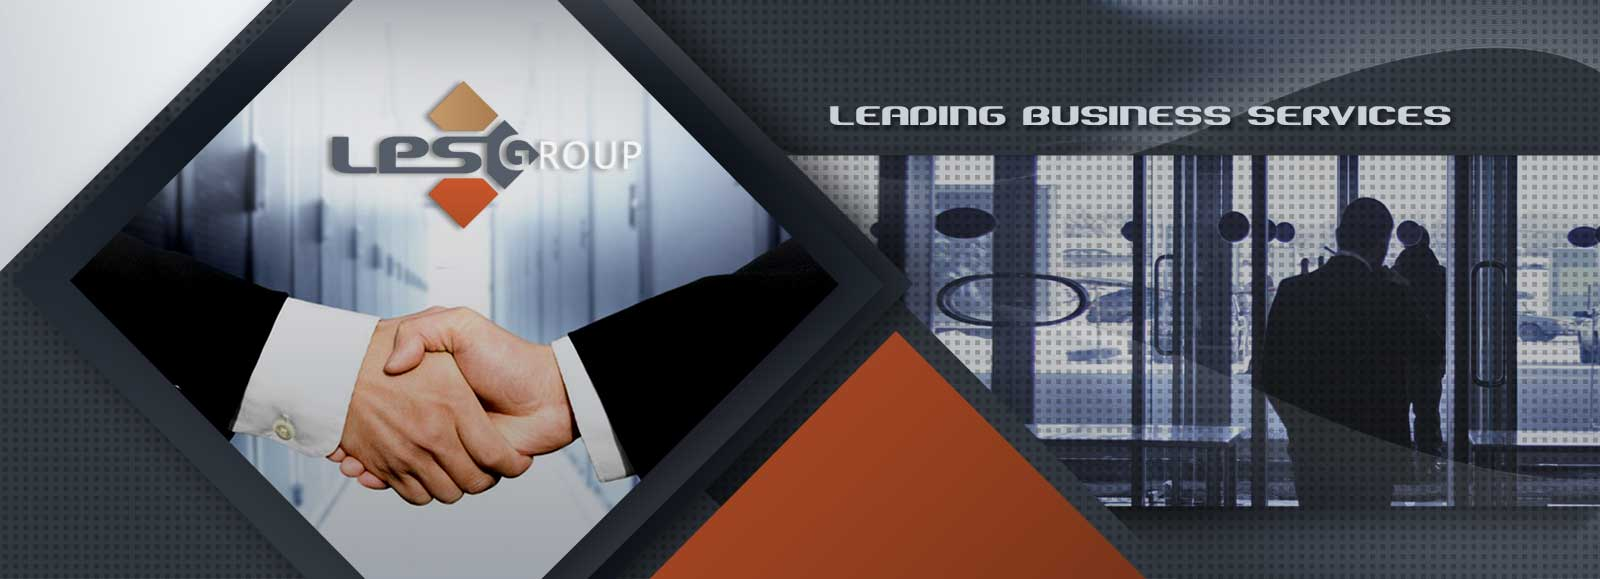 Leading Business Services